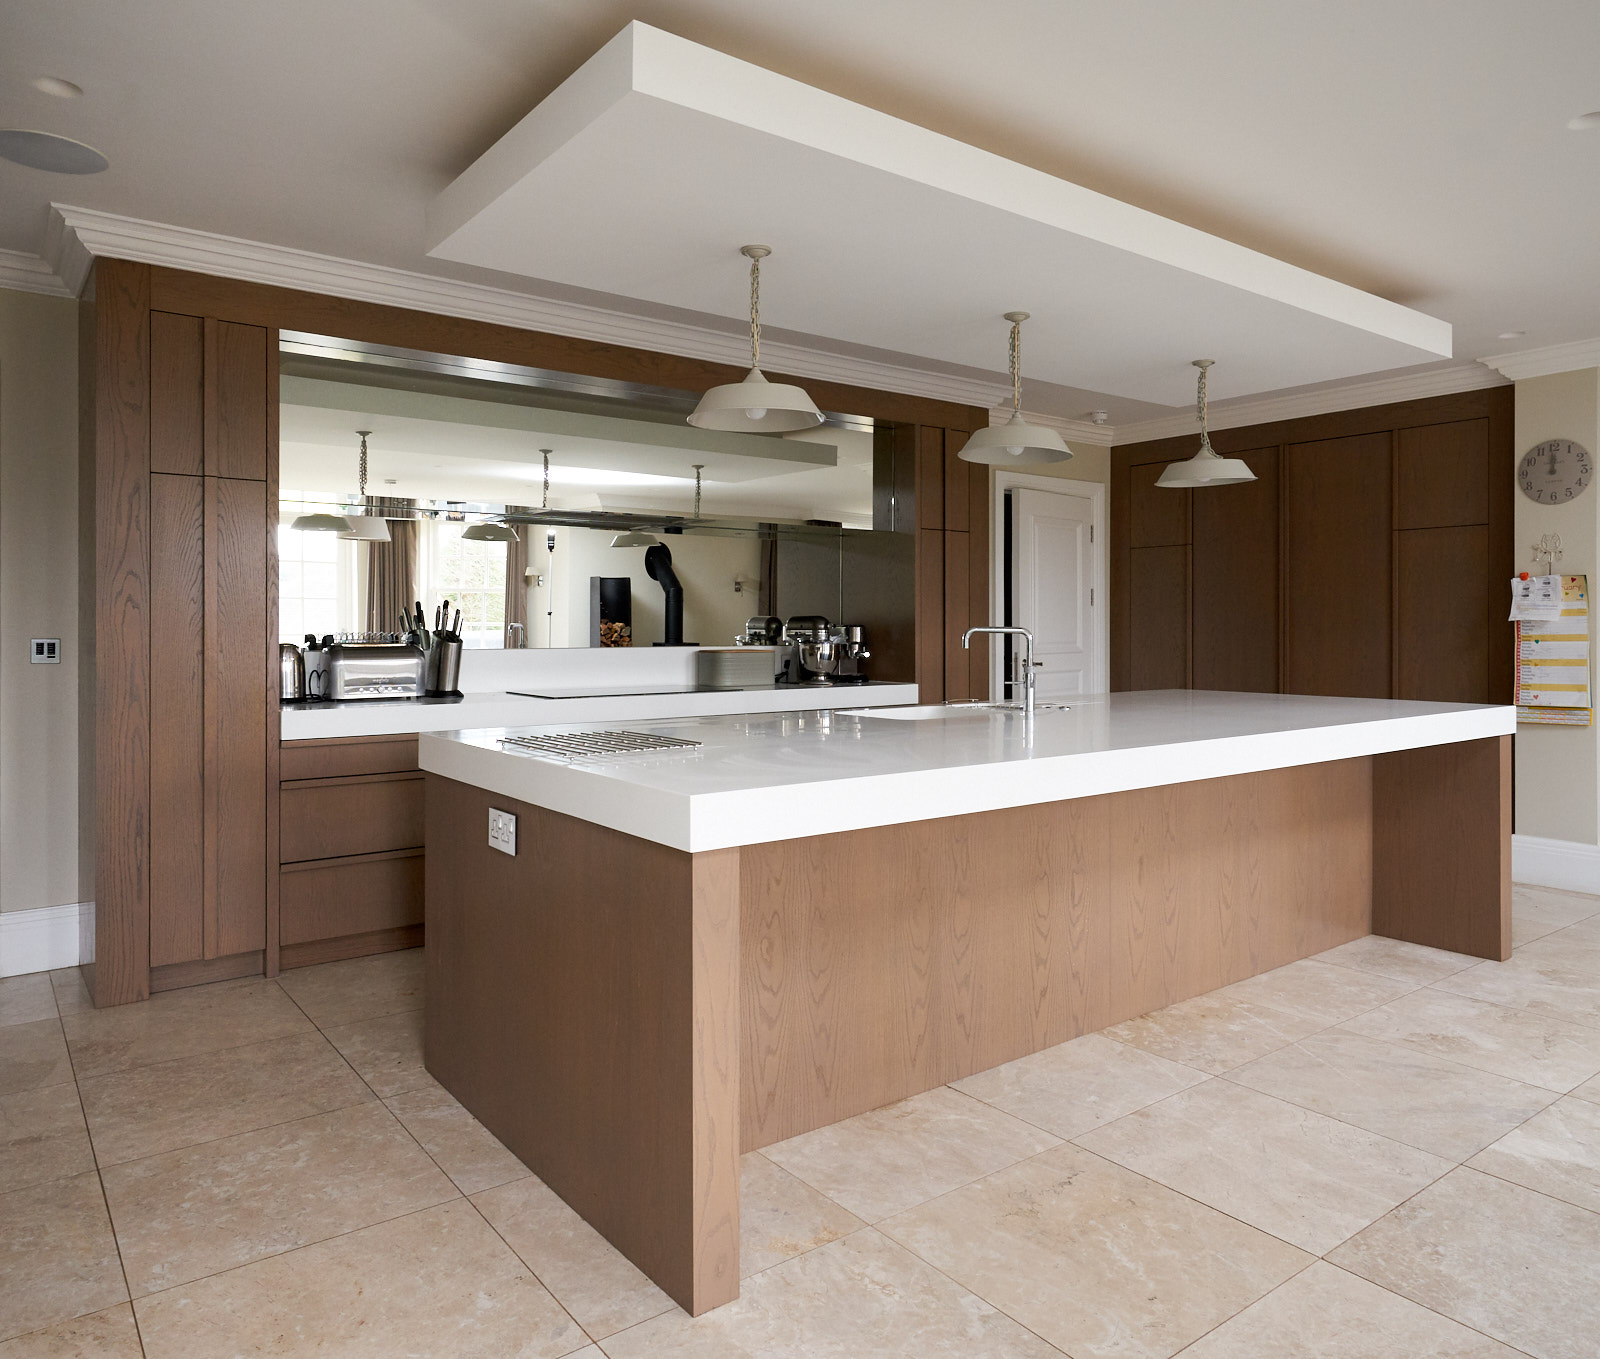 used kitchen islands opp 163 70 000 mowlem co large kitchen island miele appliances corian worktops cheshire 3799